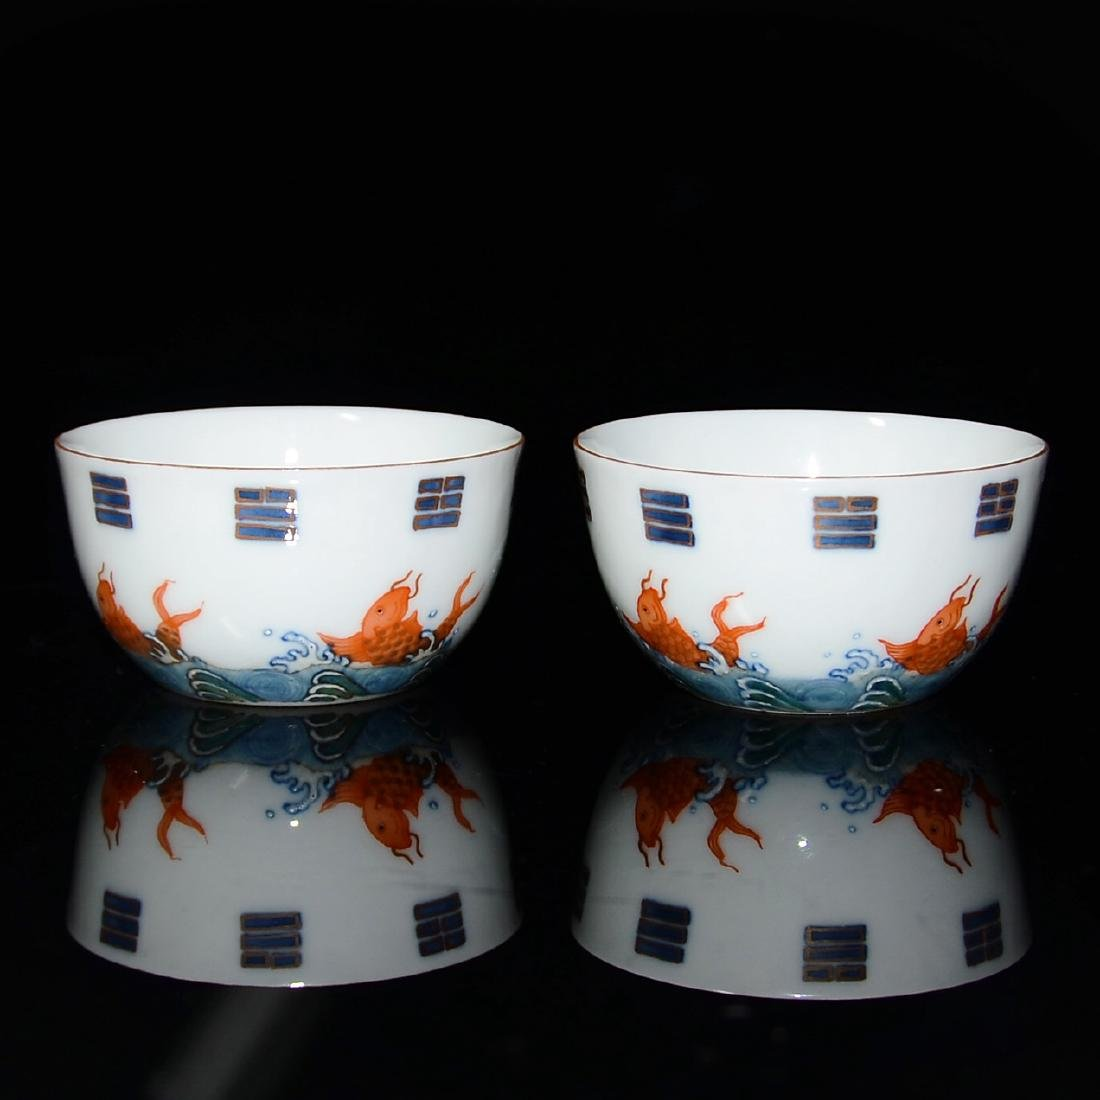 Qing, A Pair of Famille-rose with Underglazed Blue and - 2